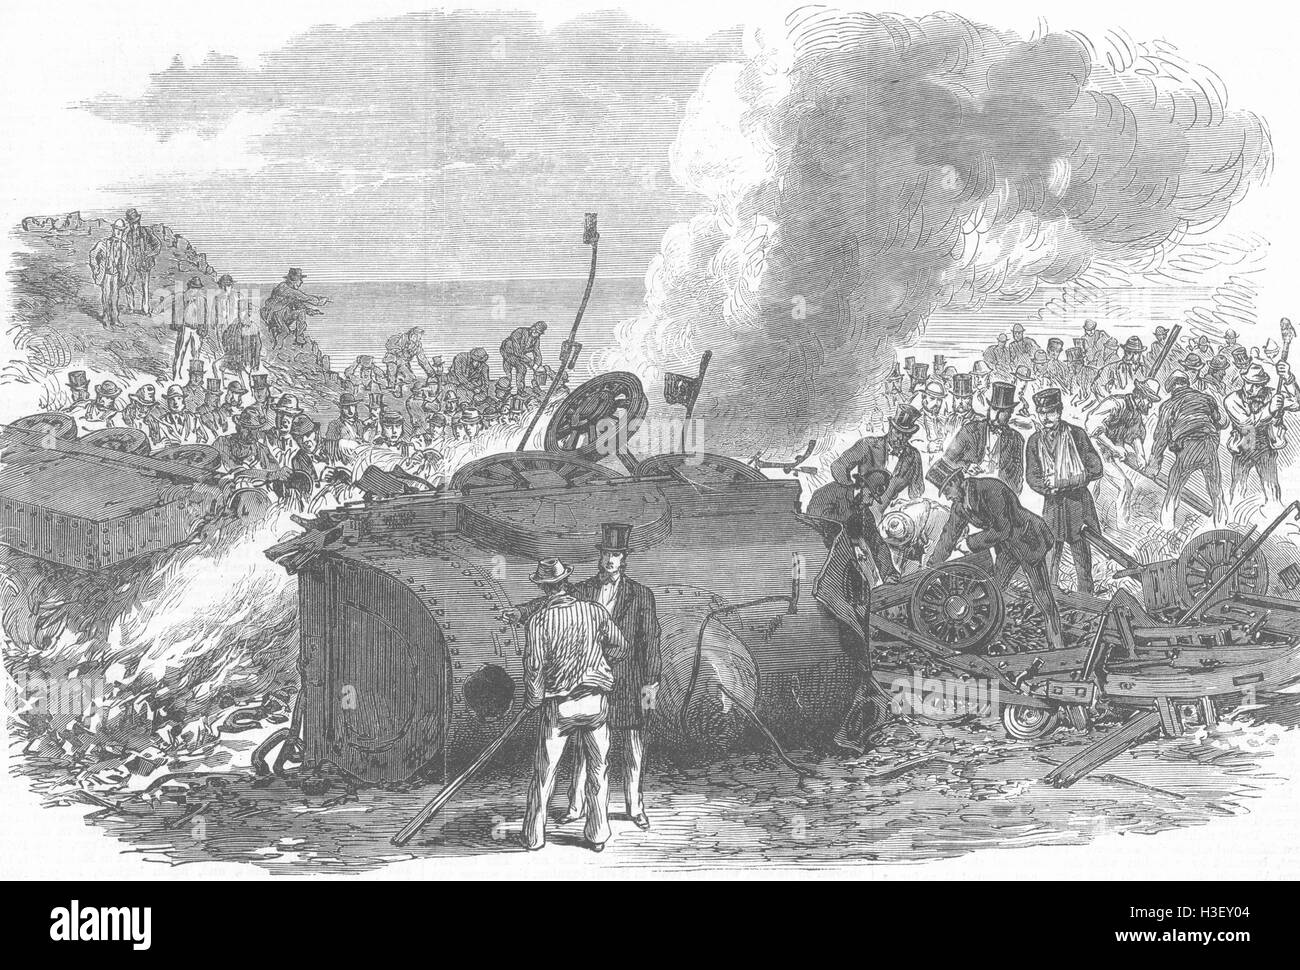 CHESHIRE disaster, Chester & Holyhead Railway 1868. Illustrated London News - Stock Image